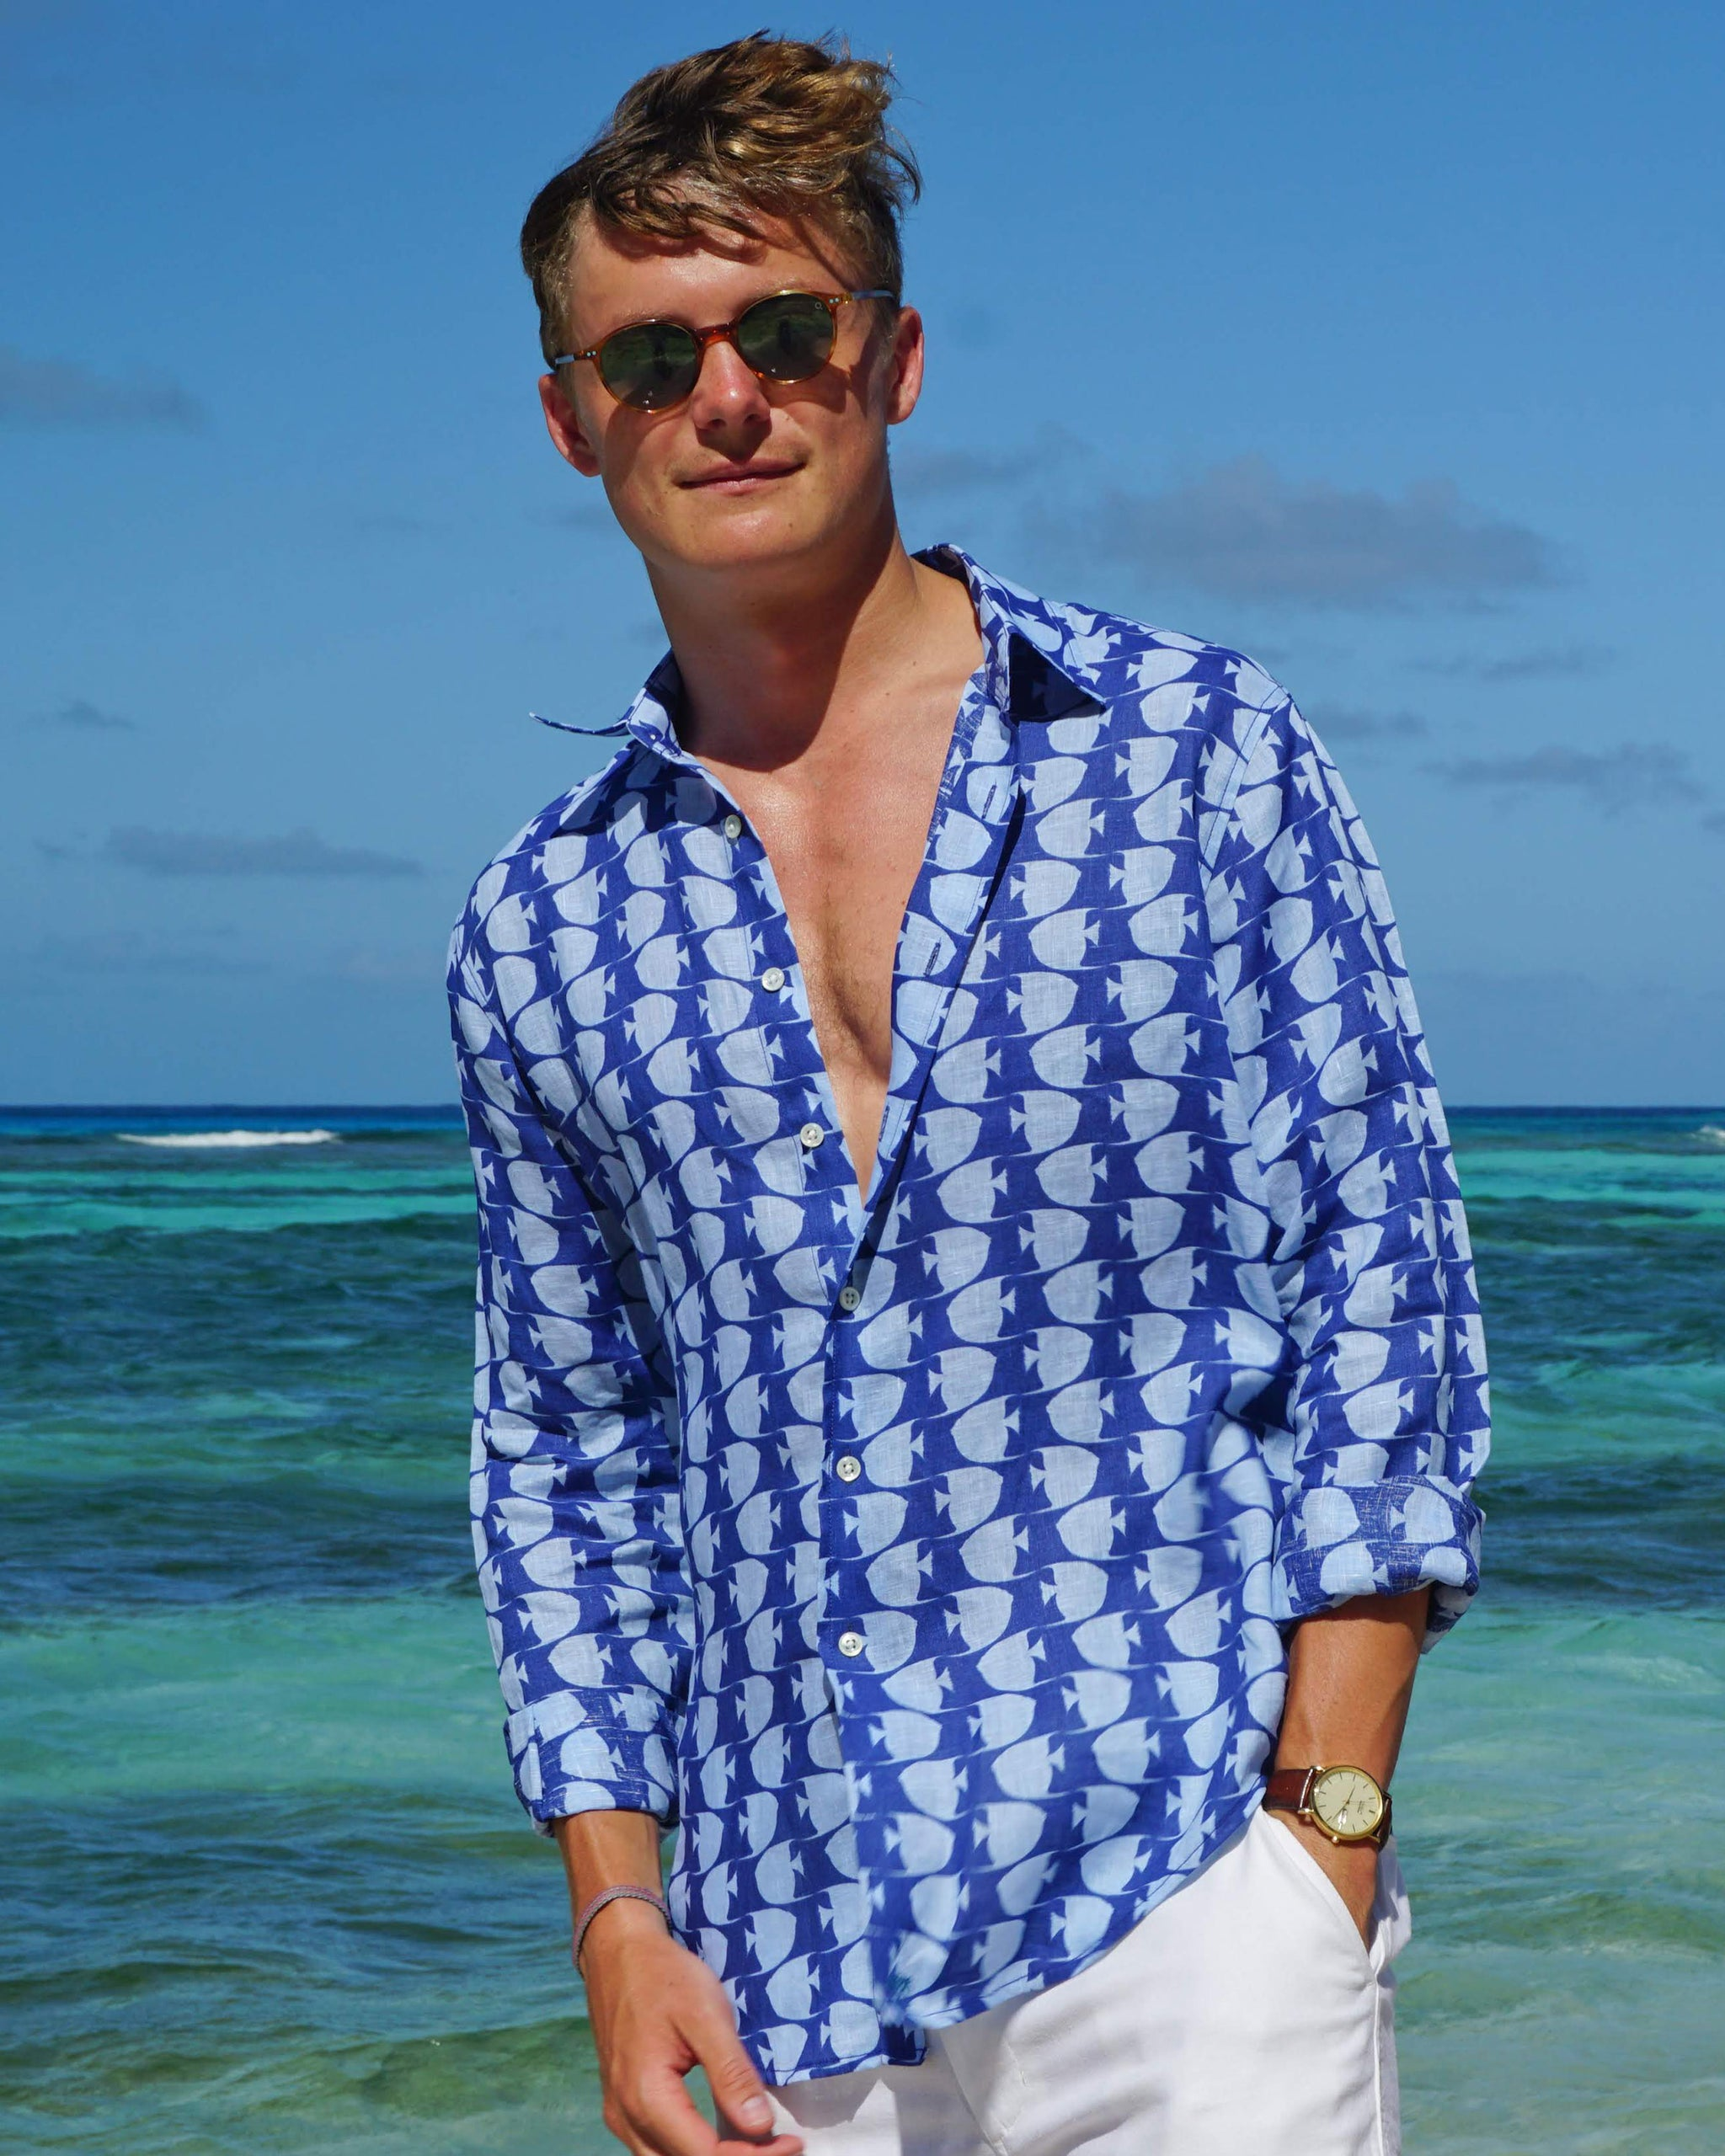 92a0c08f639a1 Mens Linen Shirt : FISH - AIRFORCE BLUE. Designer Lotty B for Pink House  Mustique